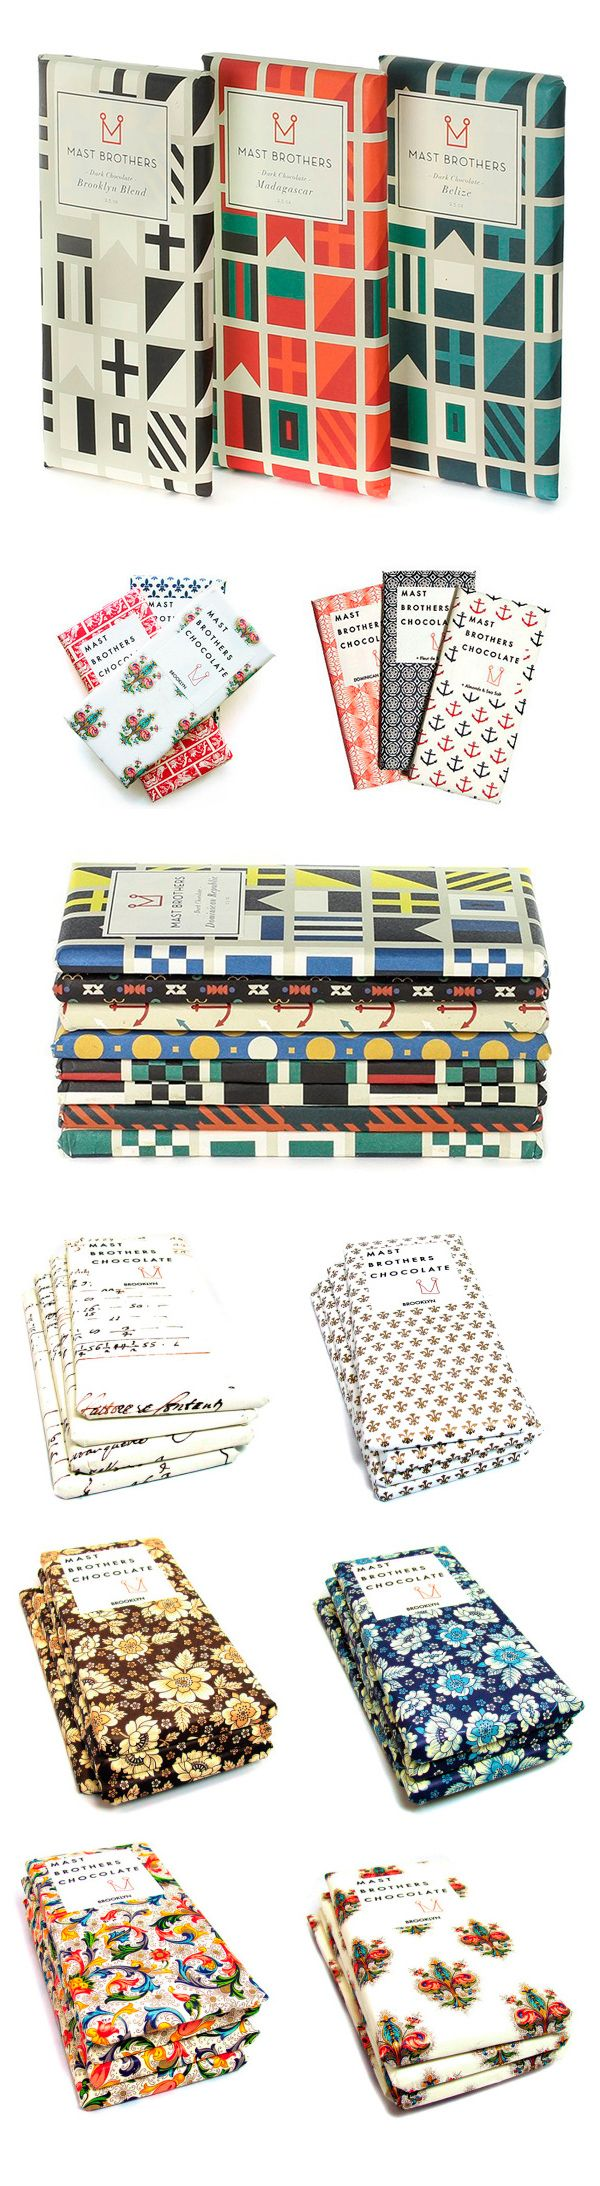 Mast Brothers Chocolate collectible patterned wrappers